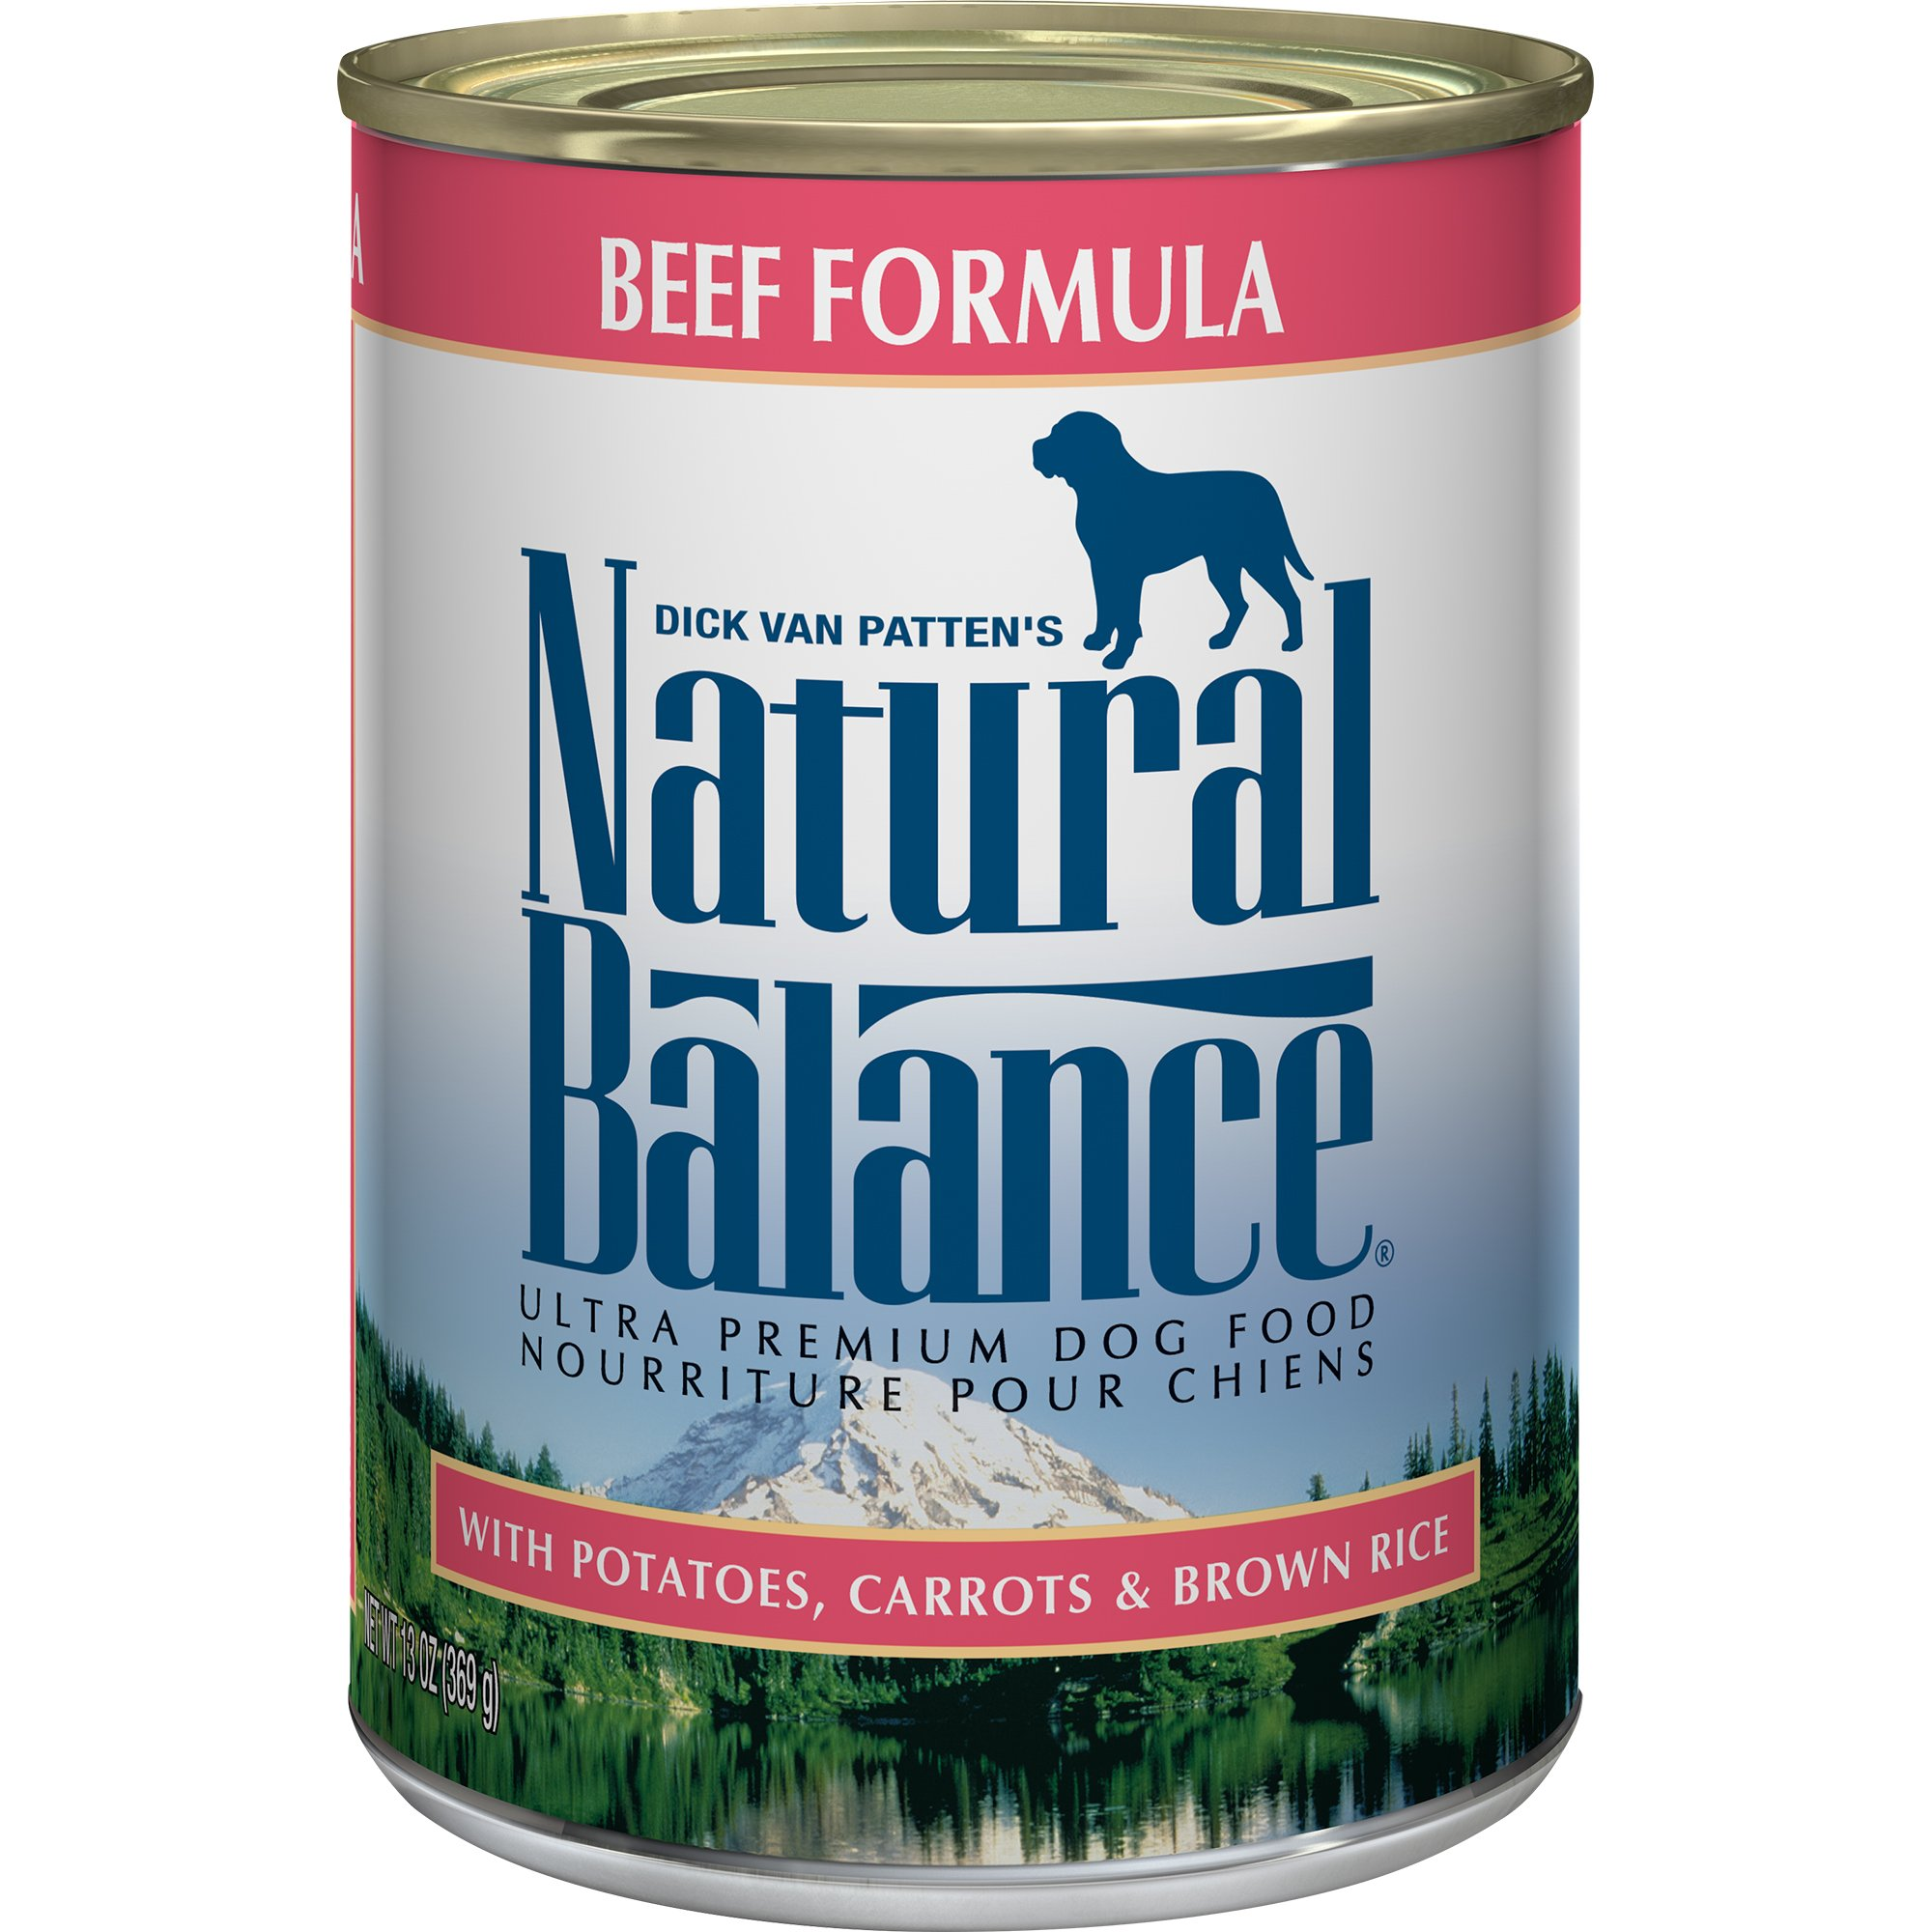 Natural Balance Ultra Premium Wet Dog Food, 13 Ounce, Pack of 12 by Natural Balance